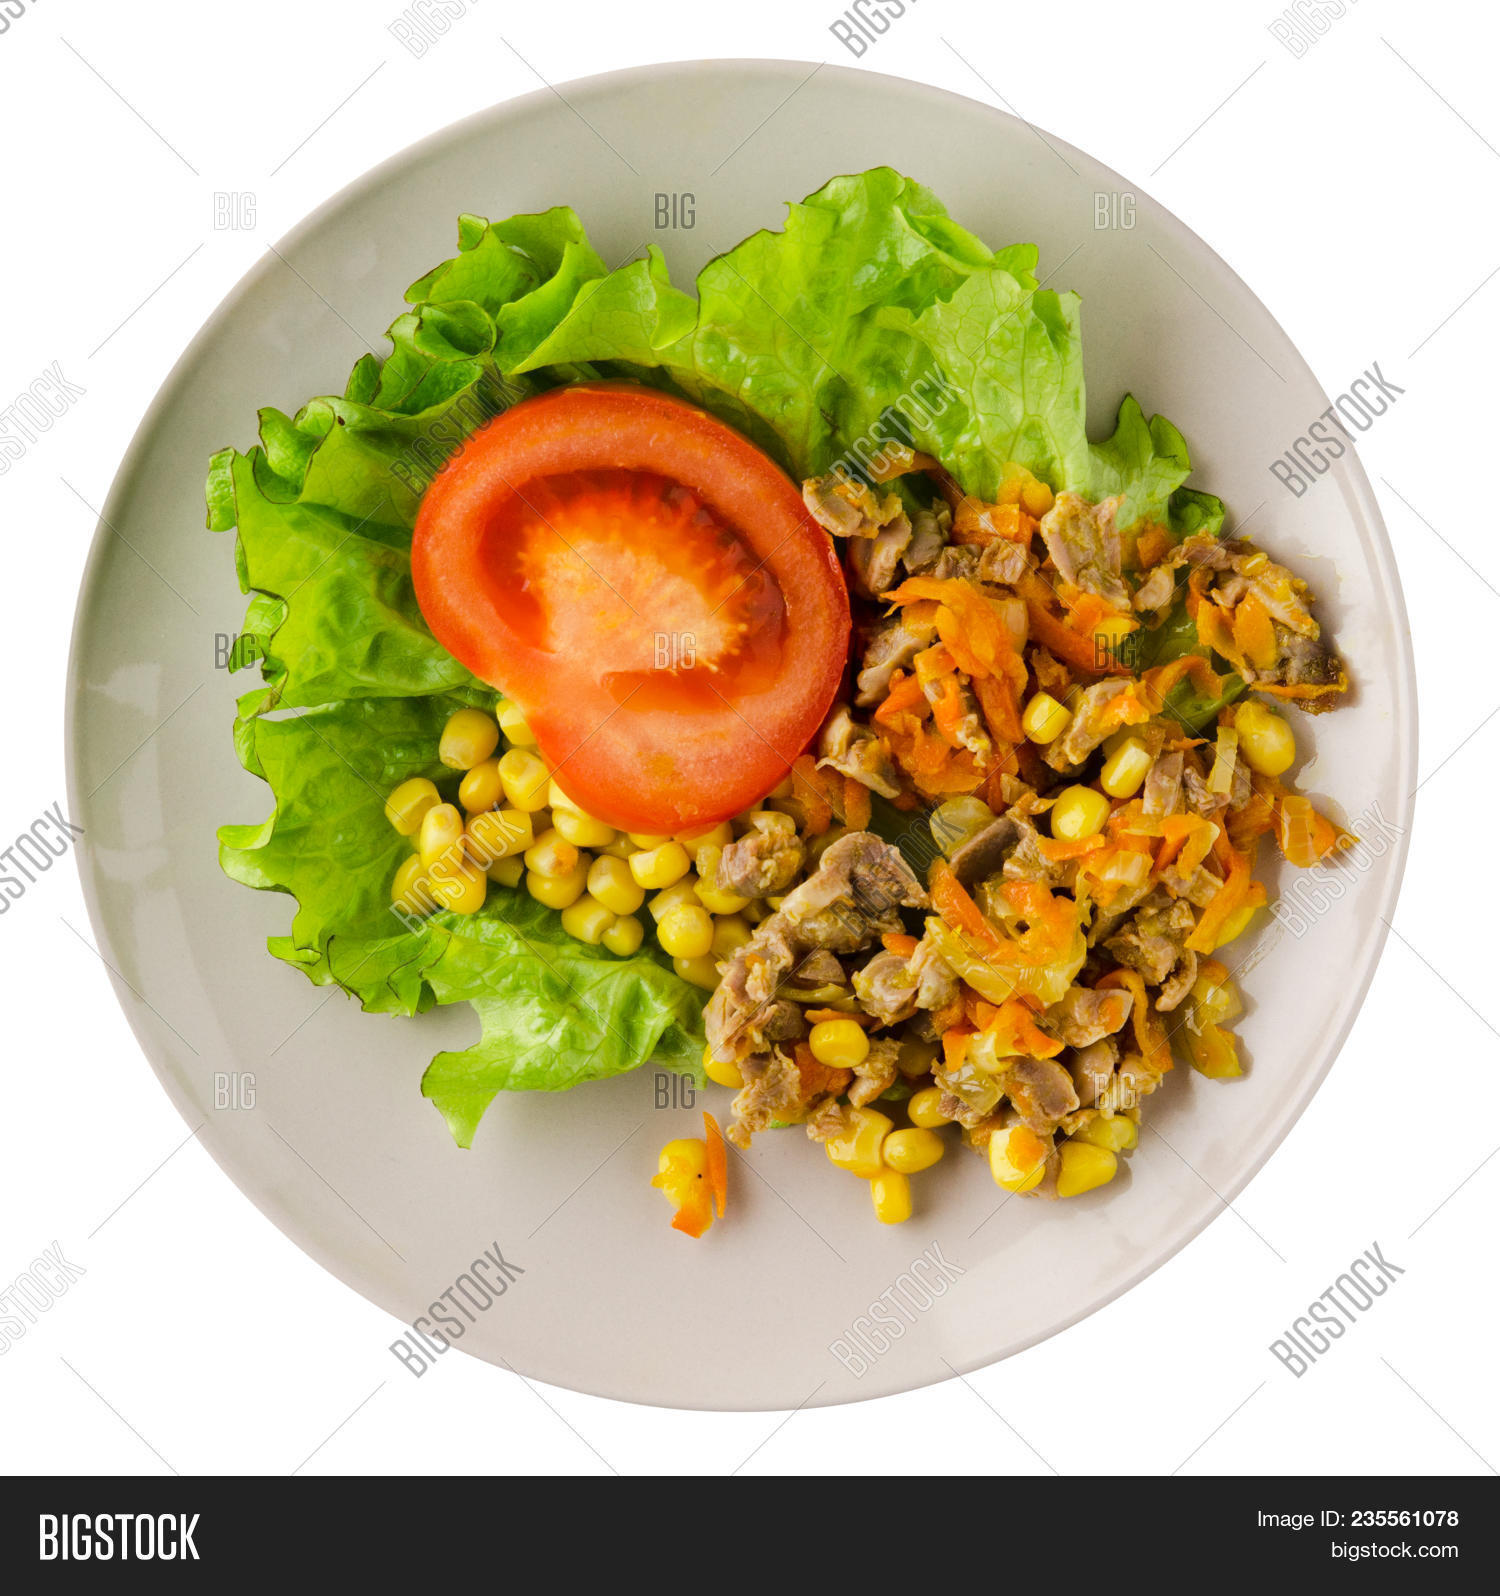 salad with chicken stomachs with carrots and corn and salad on a plate. chicken salad with vegetables isolated on white background